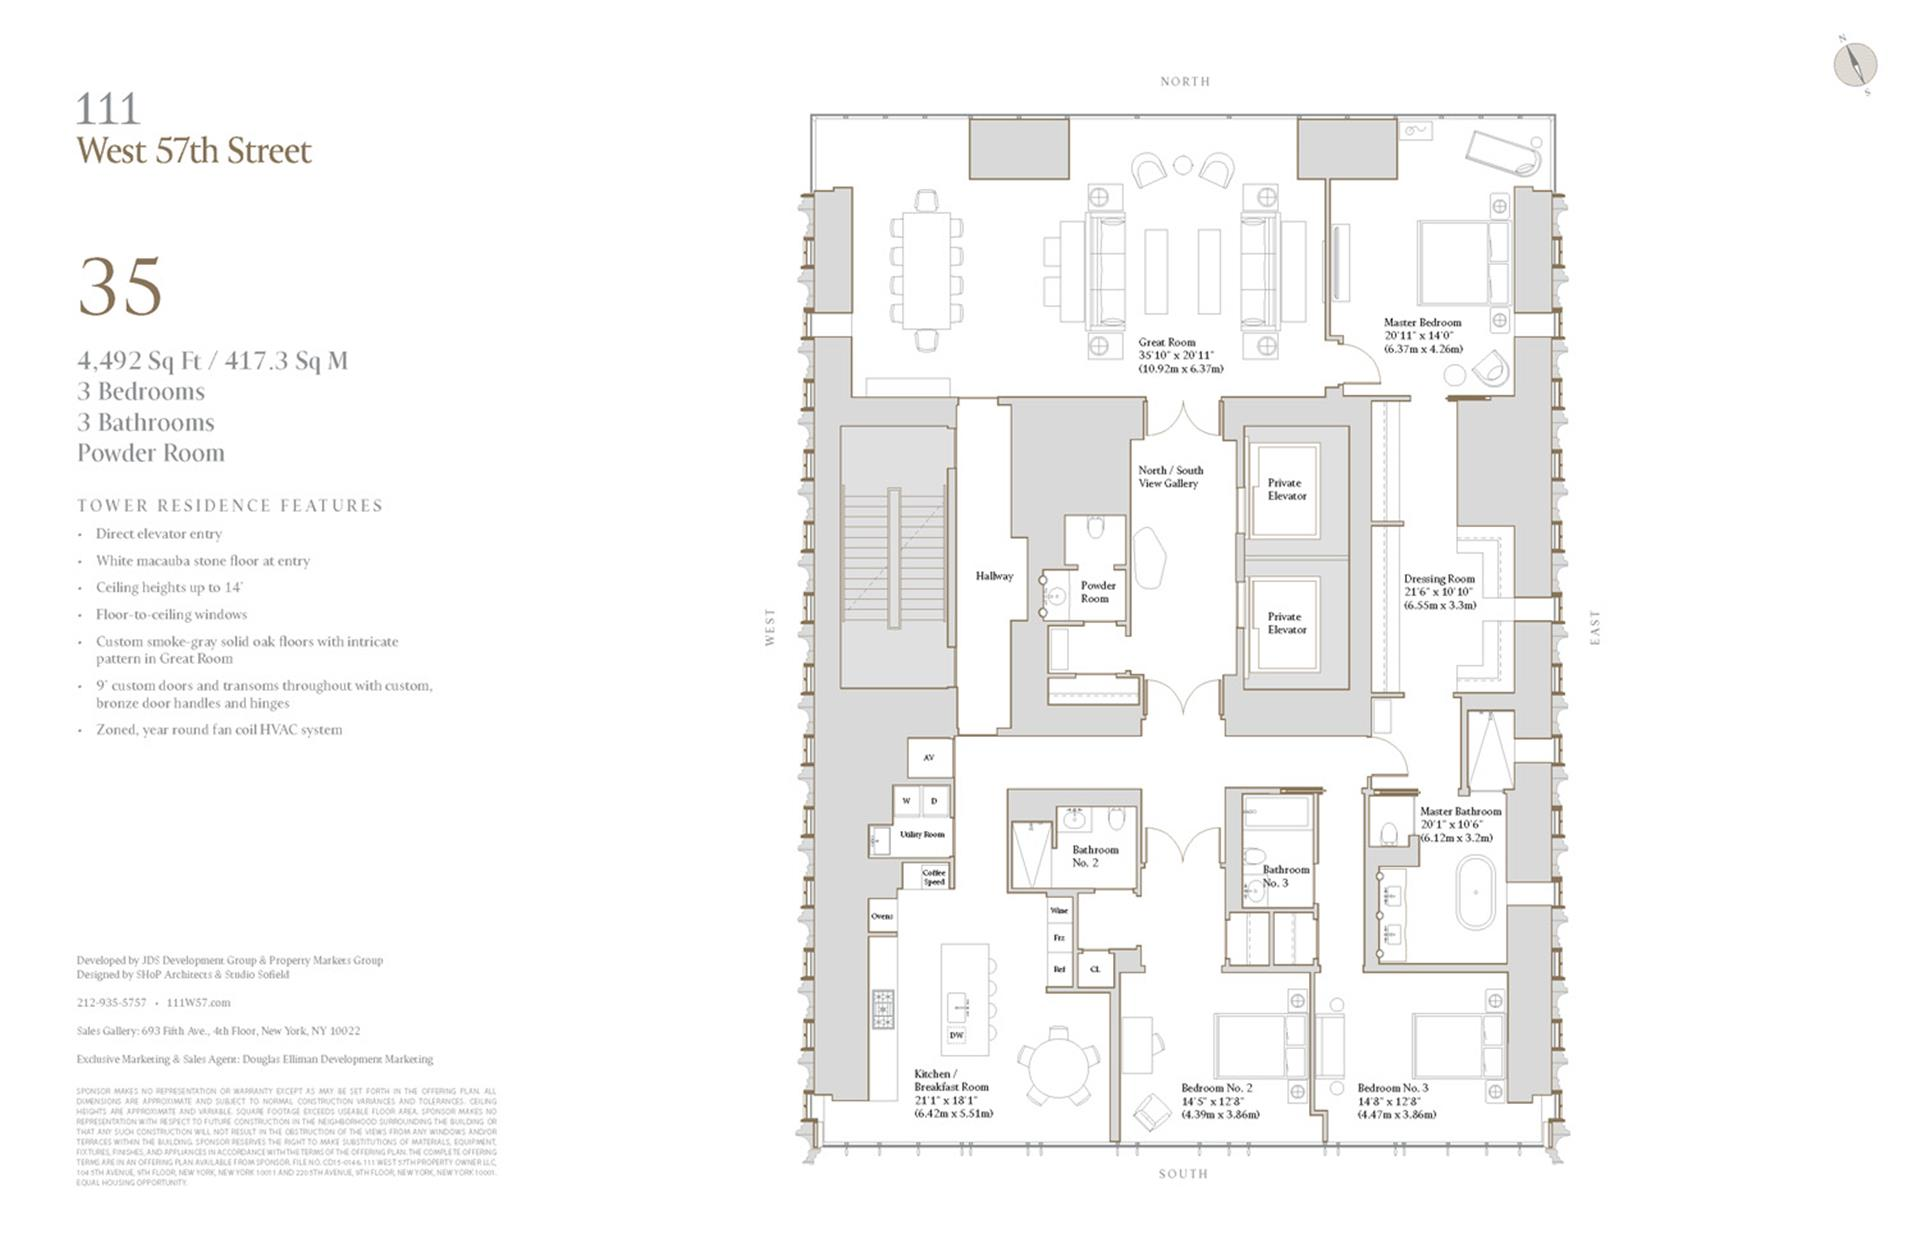 Floor plan of 111 West 57th Street, 35 - Central Park South, New York